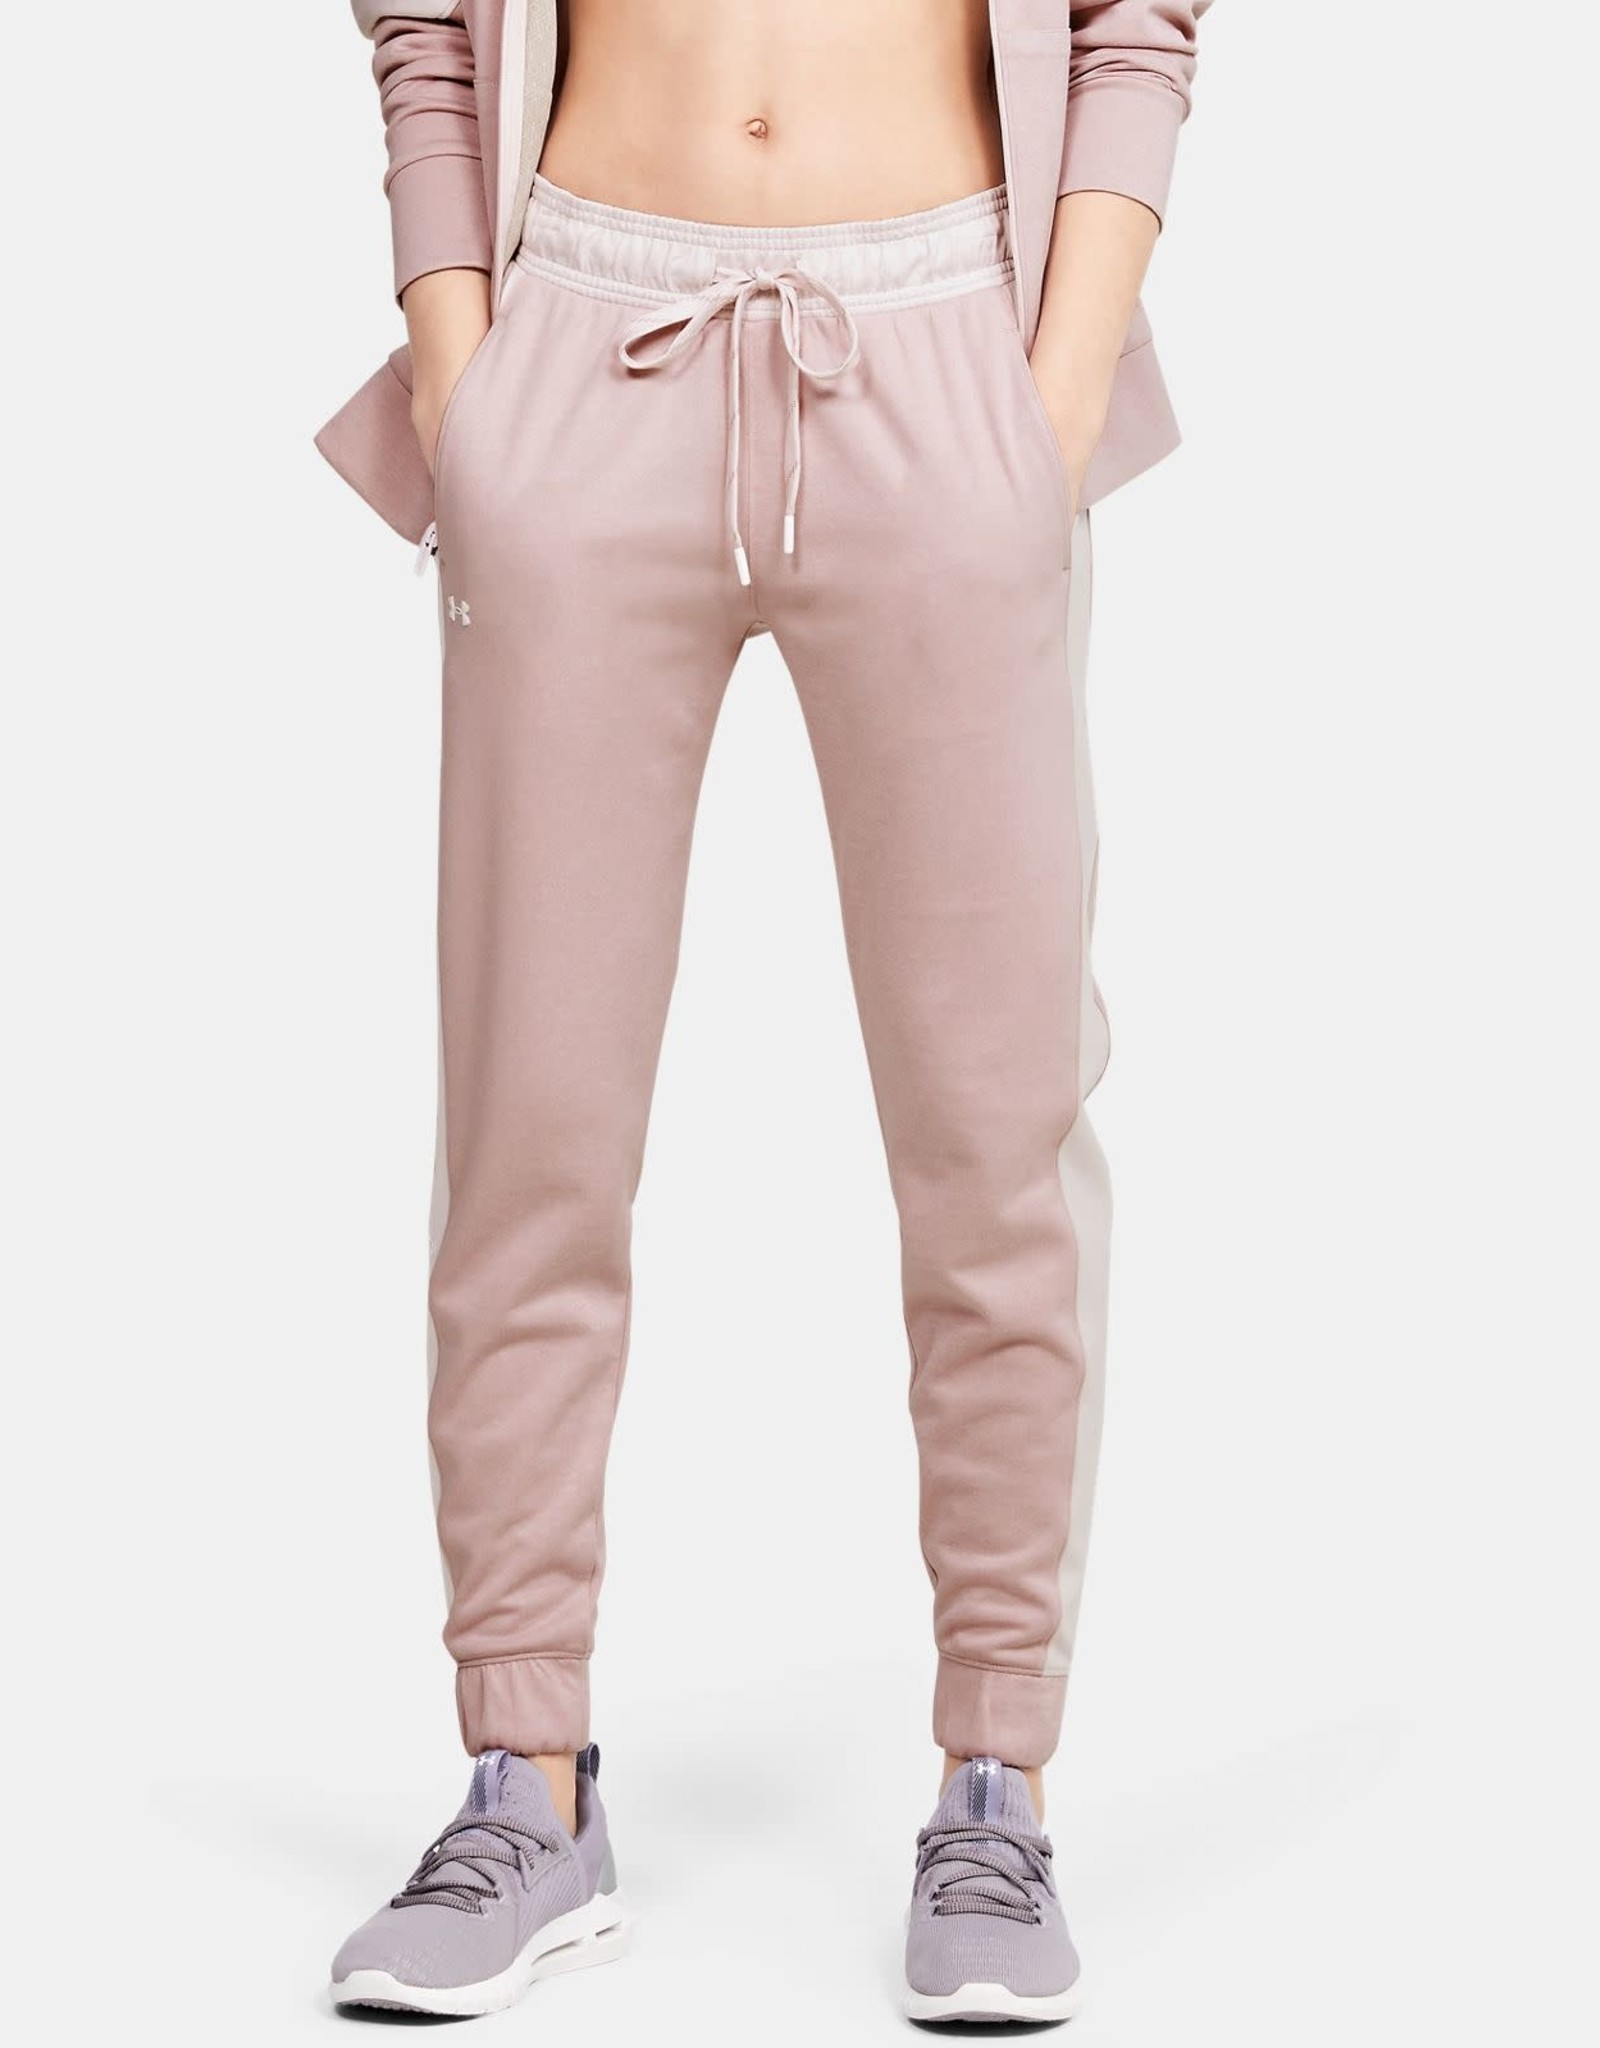 Under Armour Recover knit pants - pink